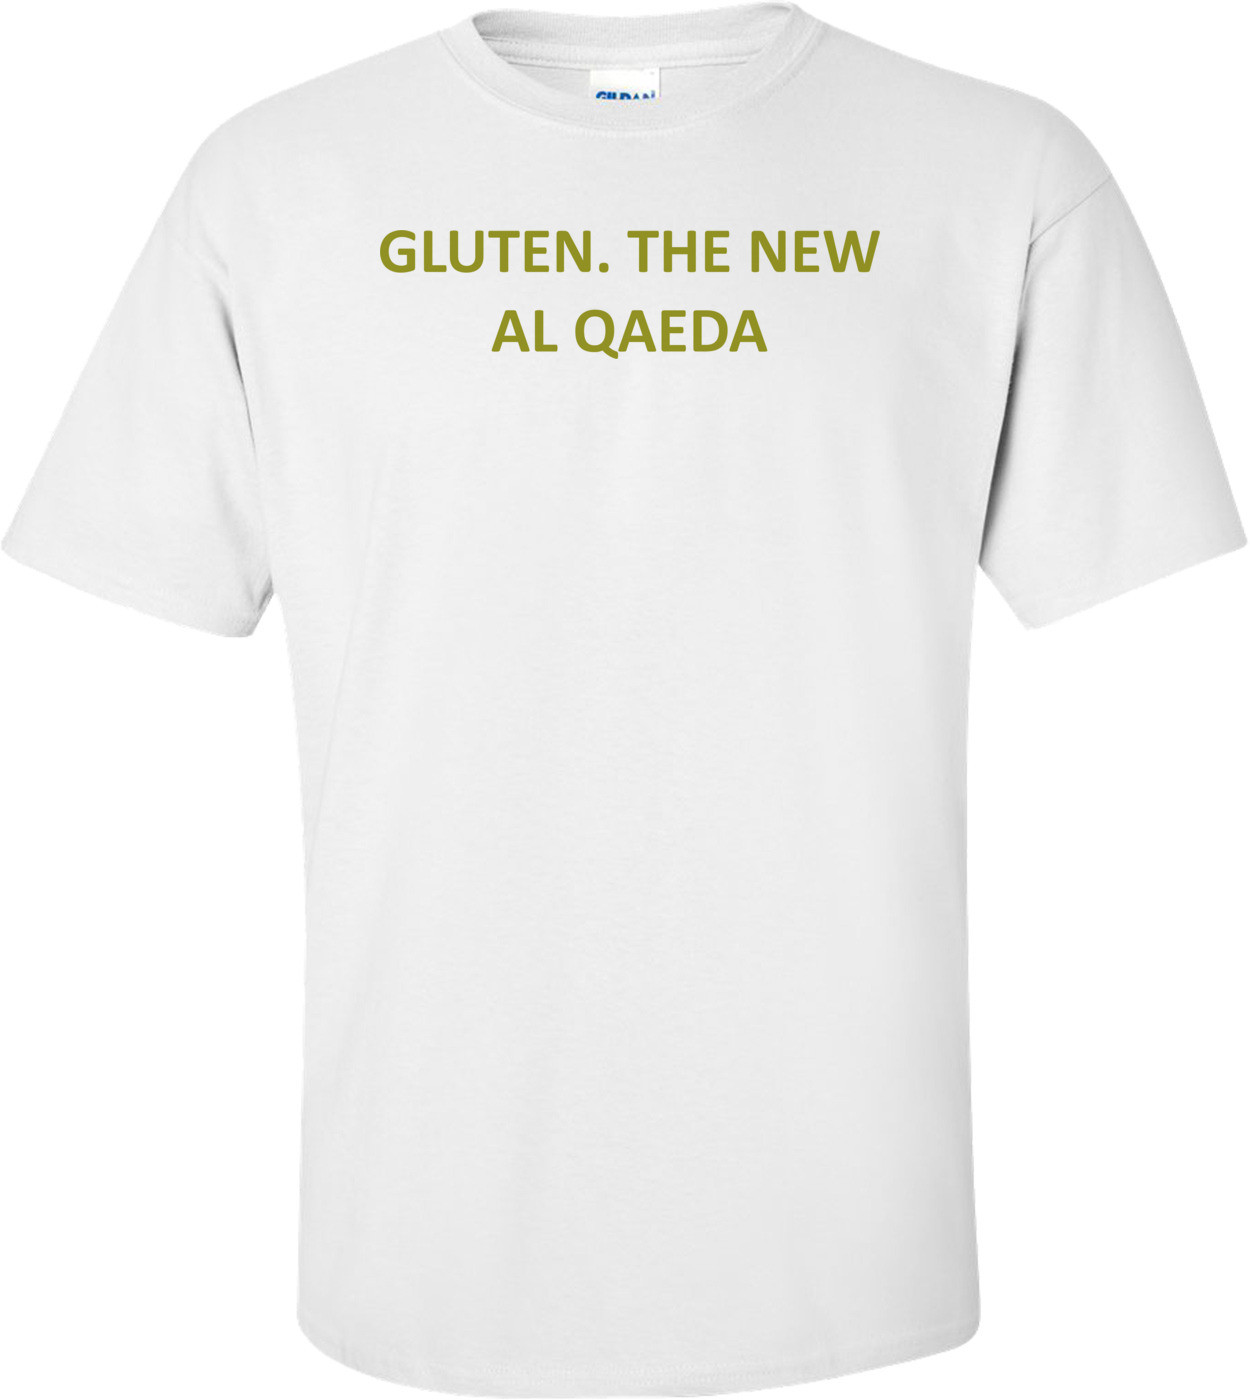 GLUTEN. THE NEW AL QAEDA Shirt